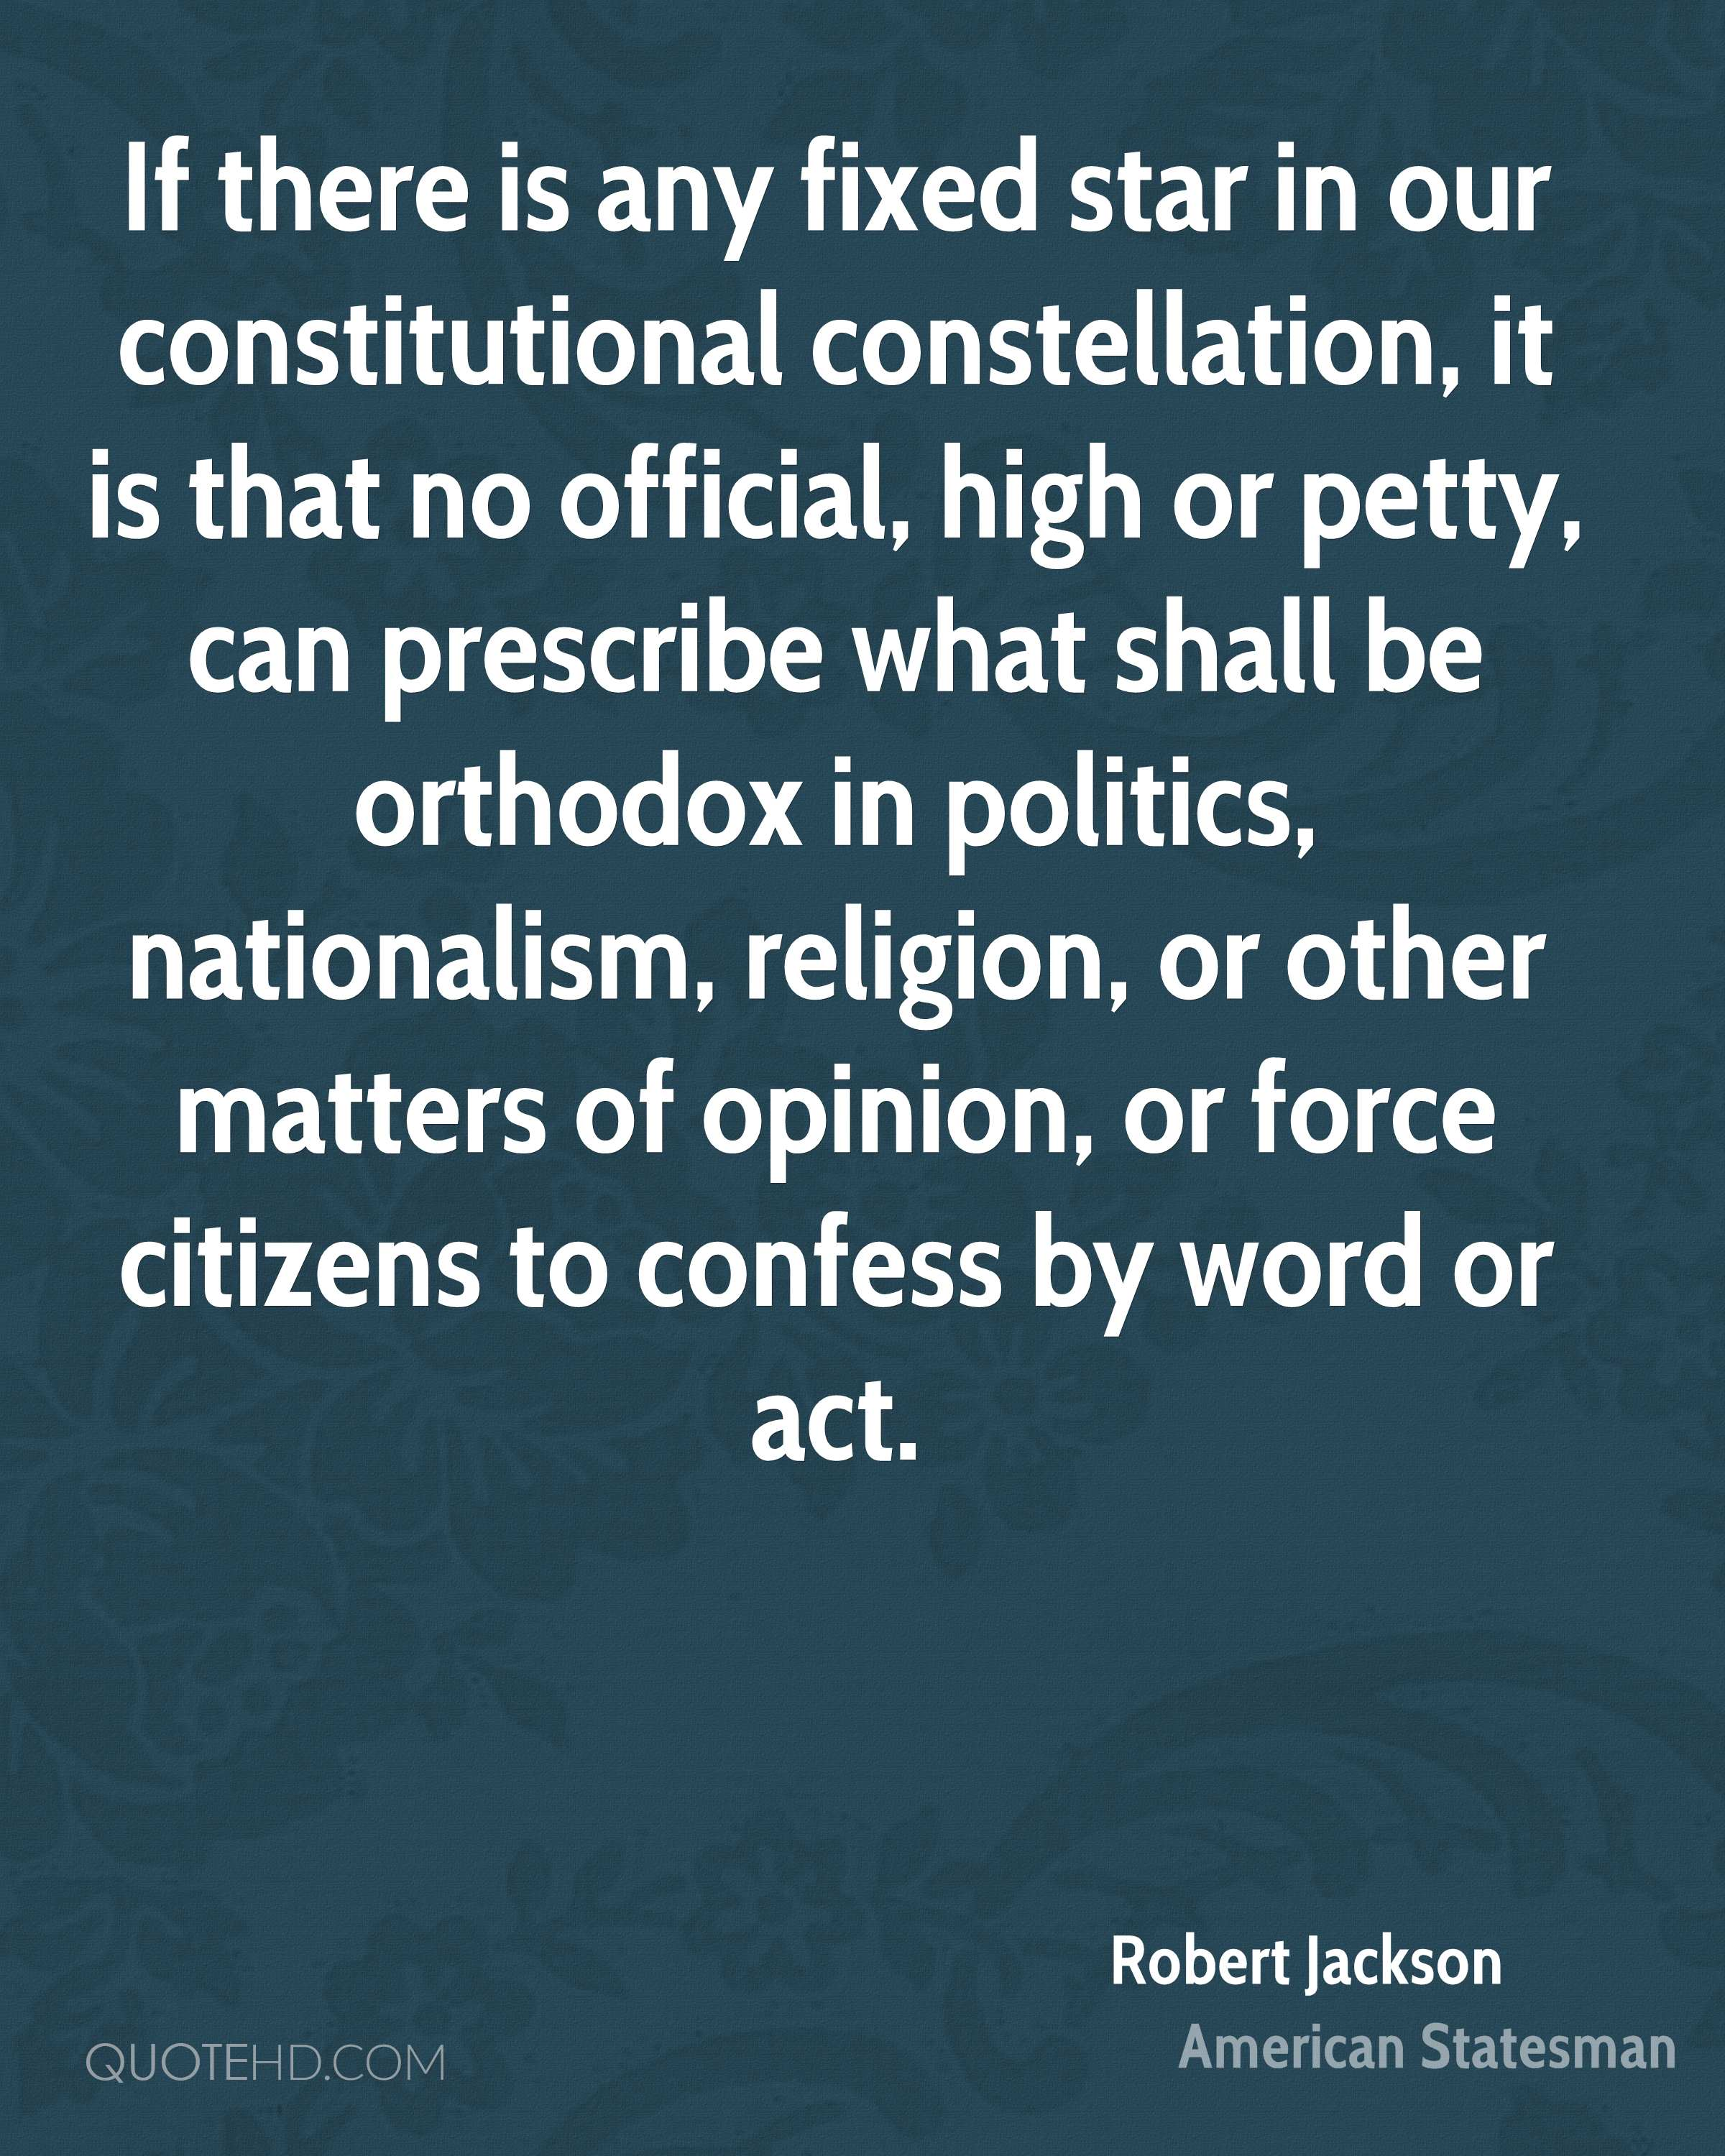 If there is any fixed star in our constitutional constellation, it is that no official, high or petty, can prescribe what shall be orthodox in politics, nationalism, religion, or other matters of opinion, or force citizens to confess by word or act.